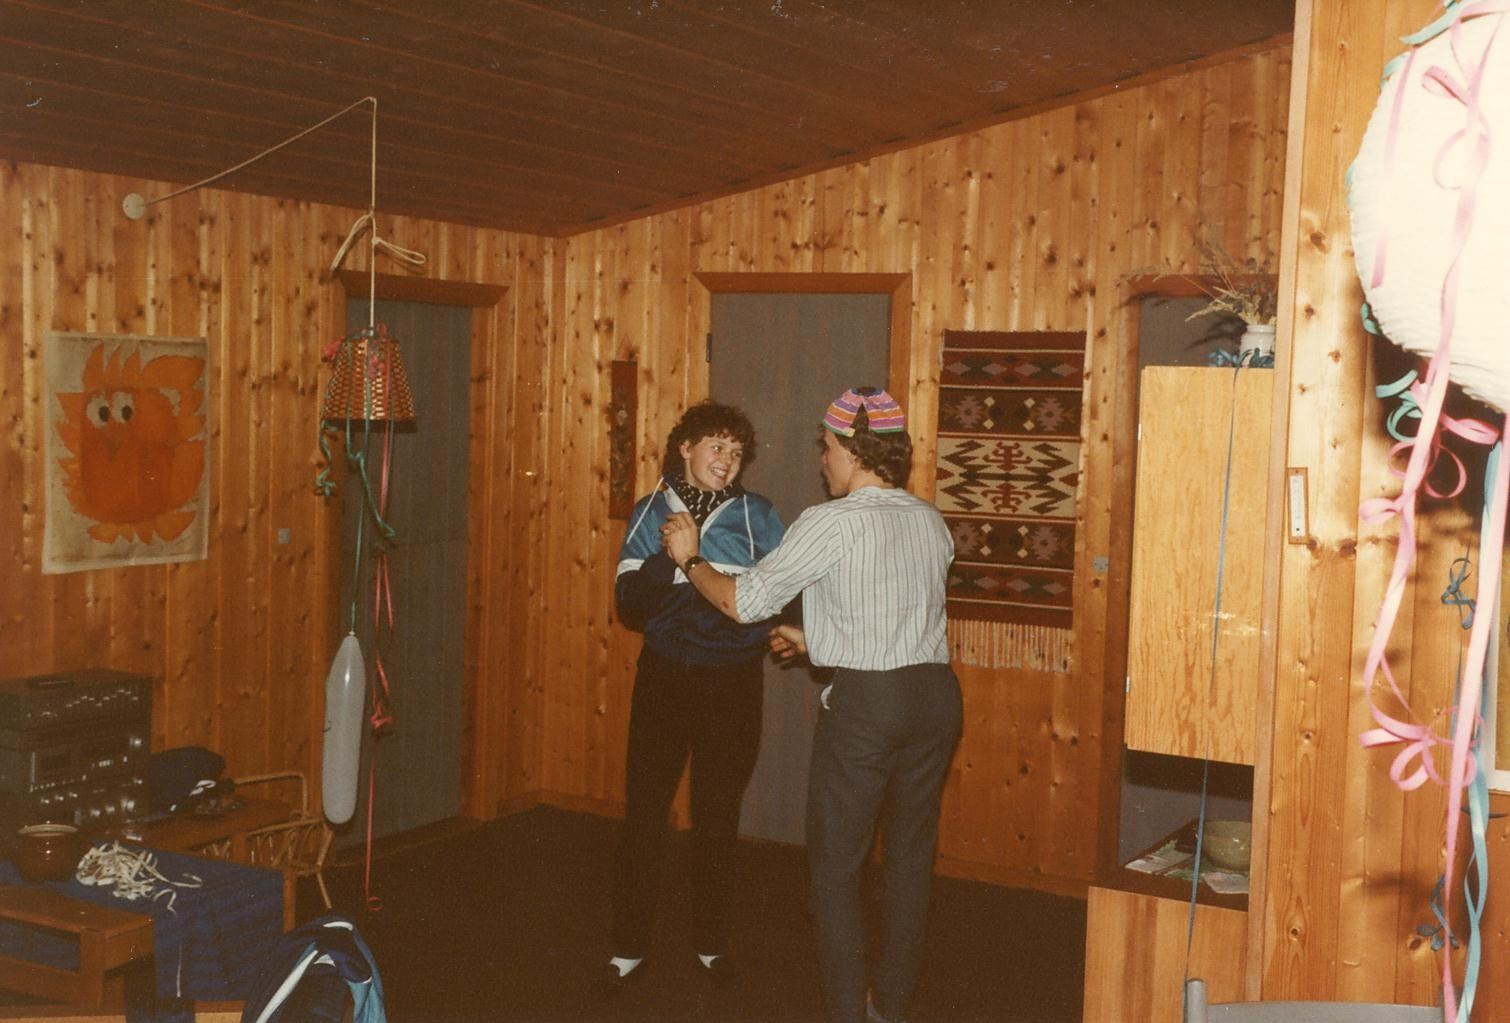 Scan11372 31-12-1983